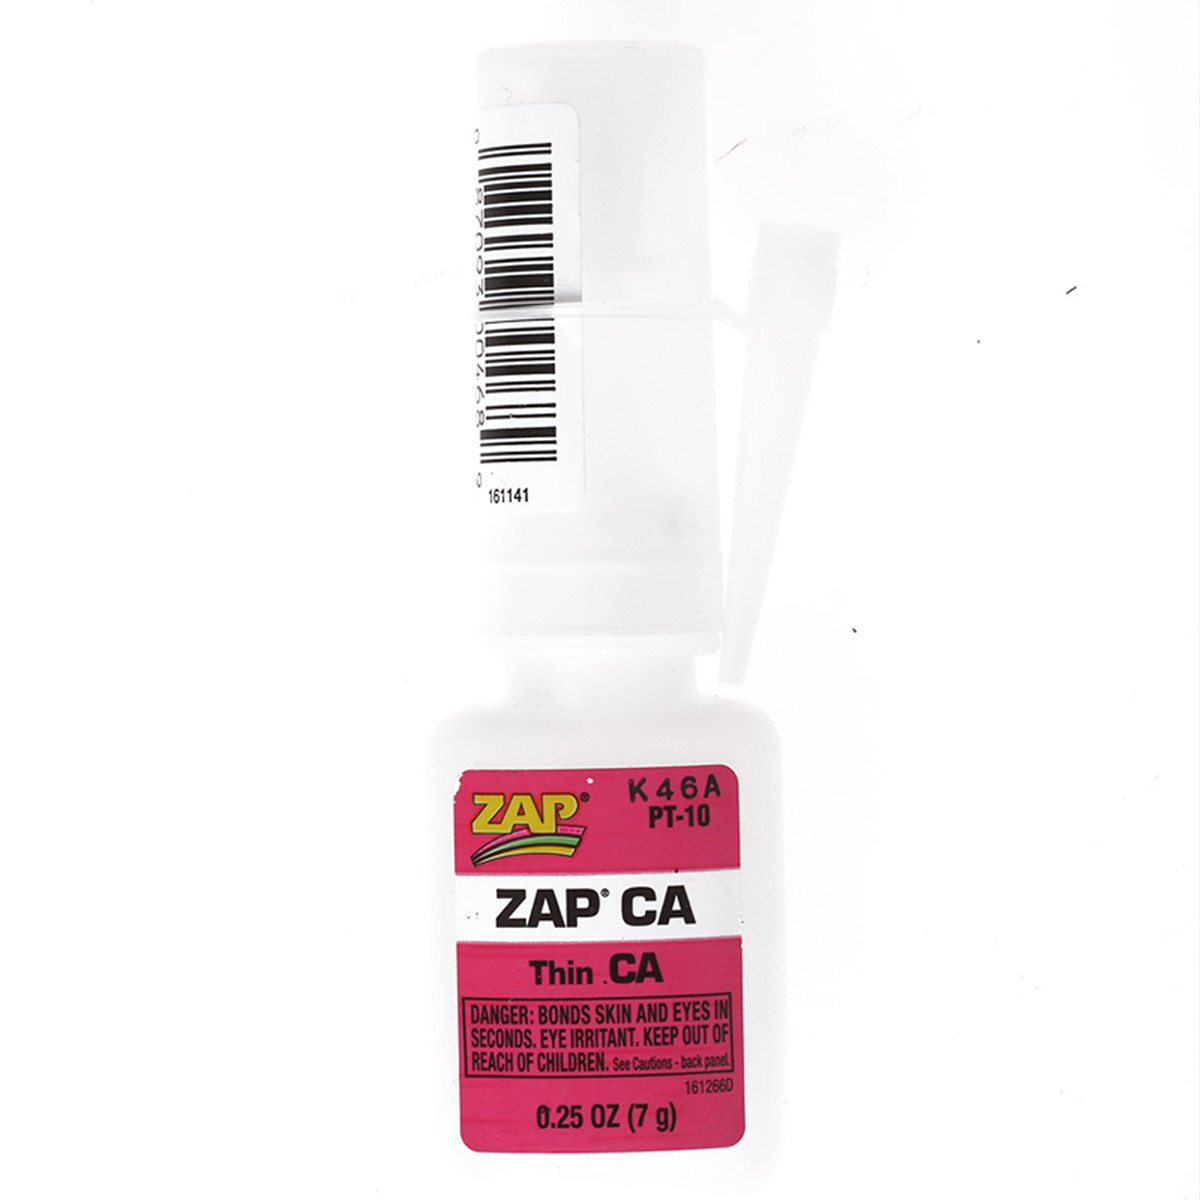 Zap Zap Ca Super Thin